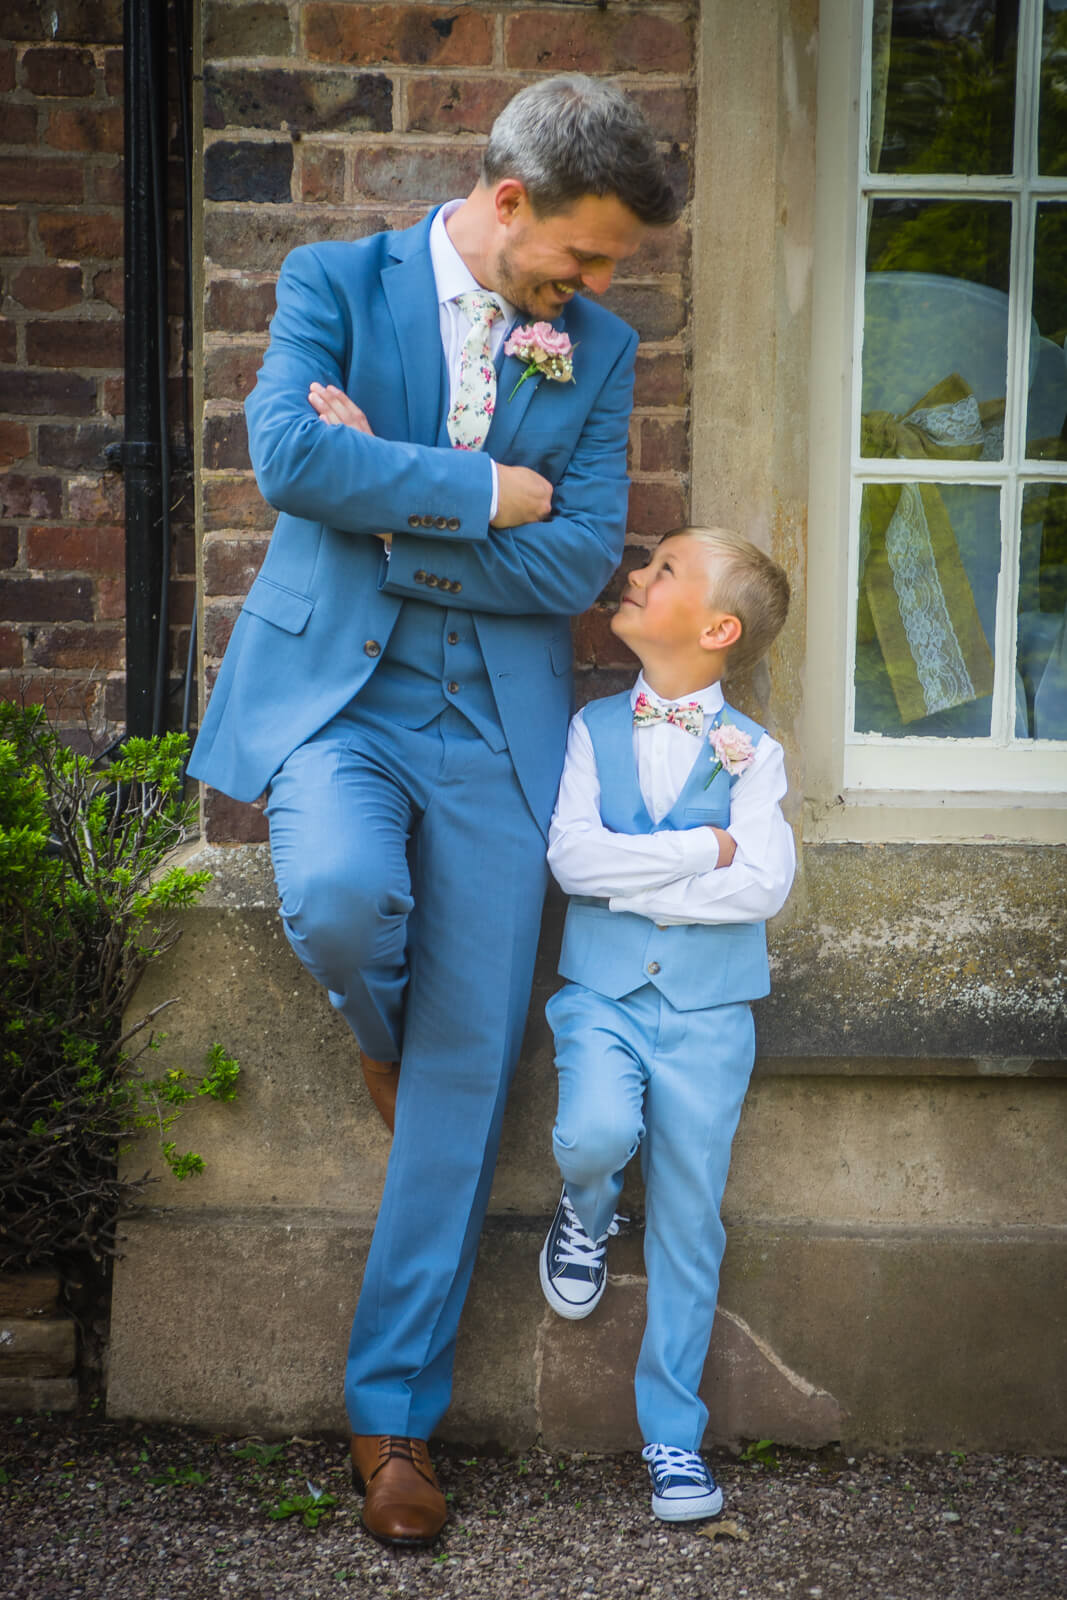 Groom and his son leaning casually against a wall